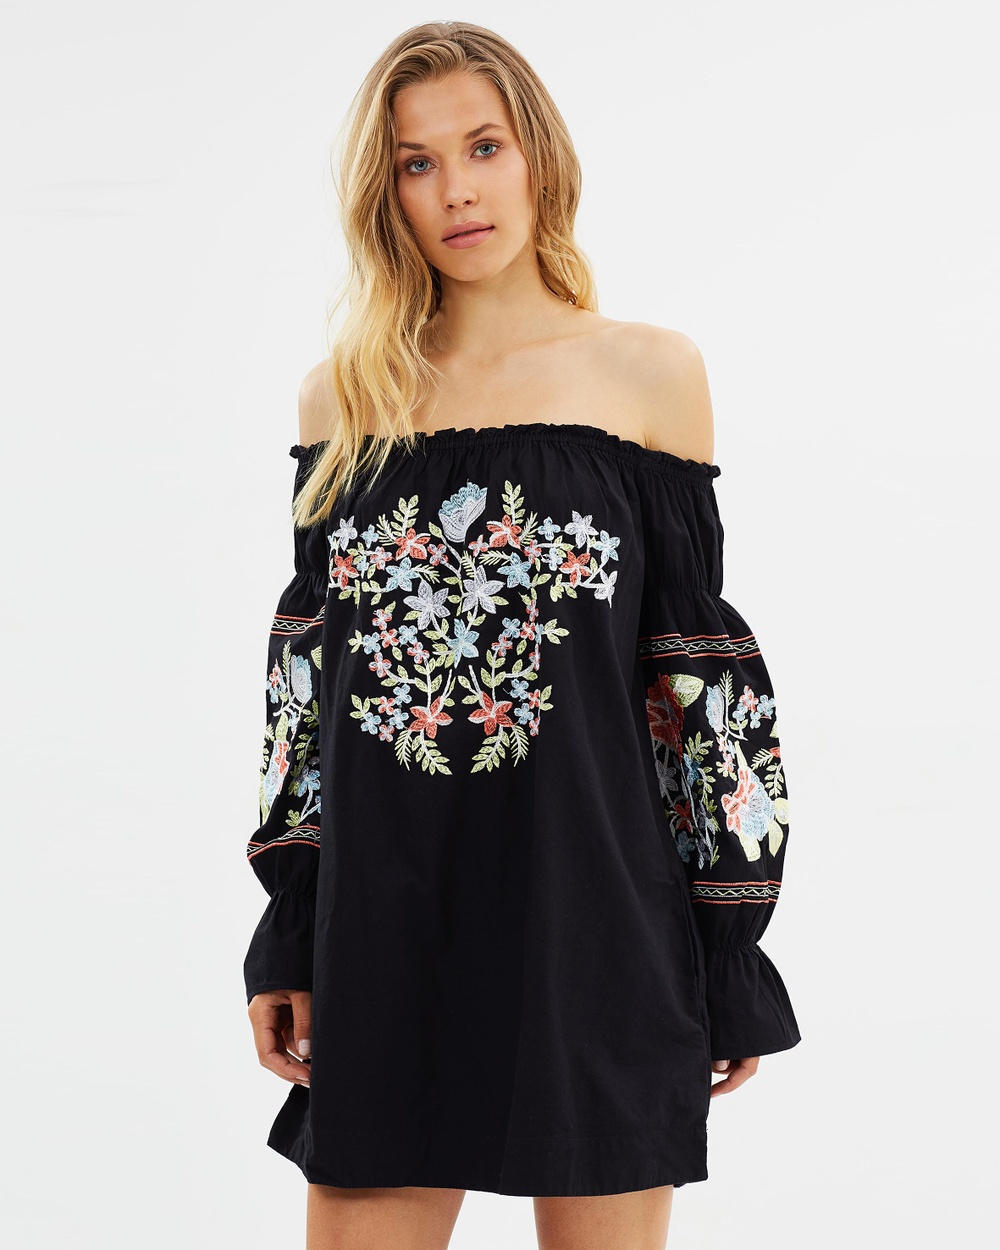 Free People Fleur Du Jour Mini Dress Dresses Black Fleur Du Jour Mini Dress